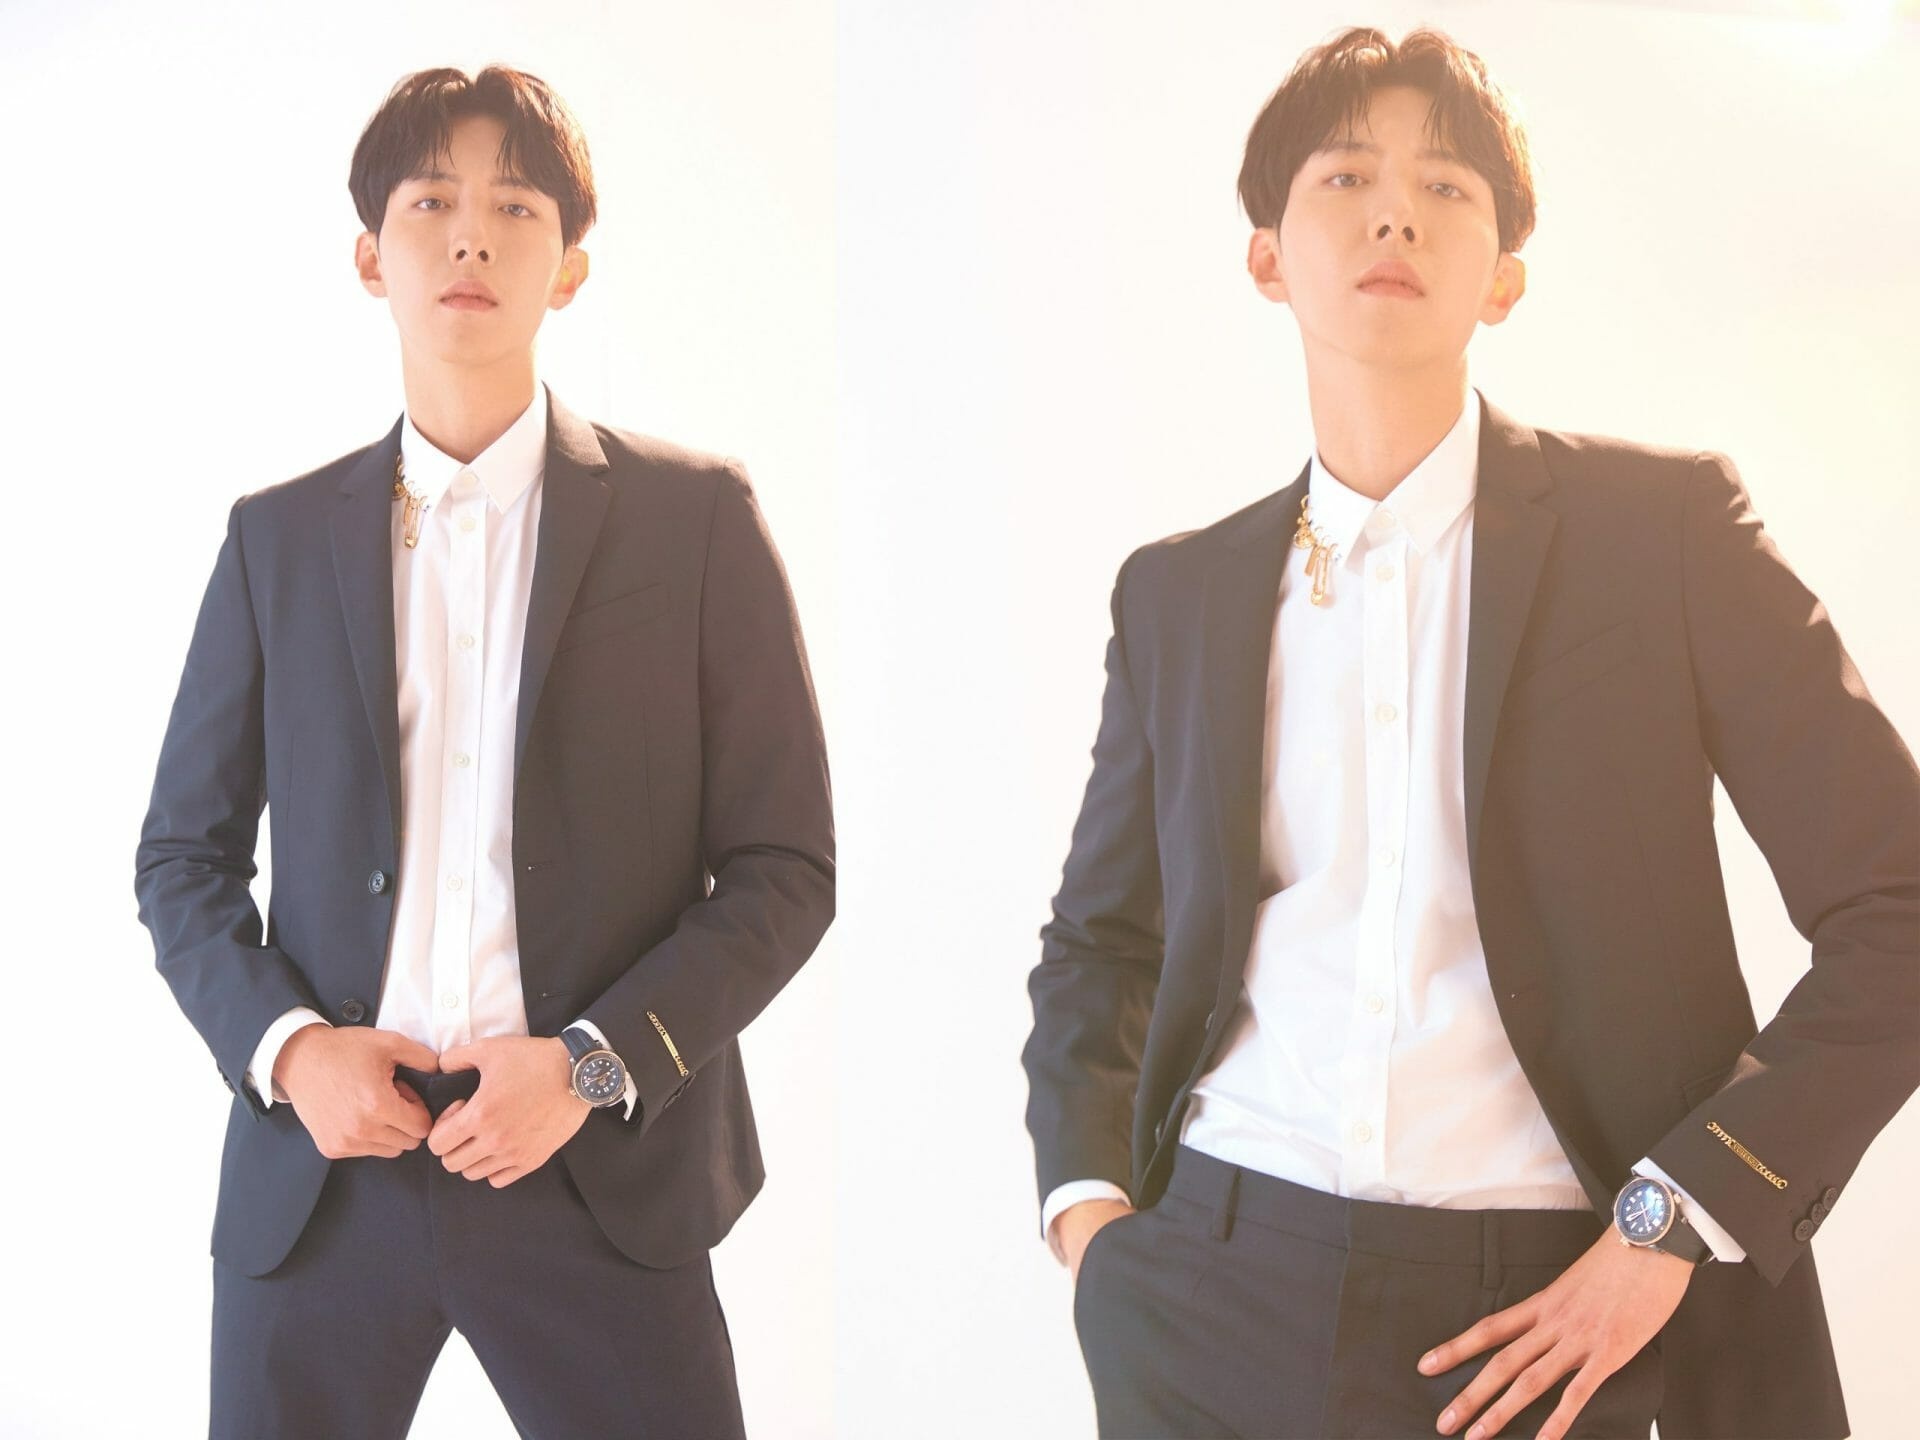 Presenting Lee Jung-Shin of CNBLUE, Our June/July '21 Cover Star